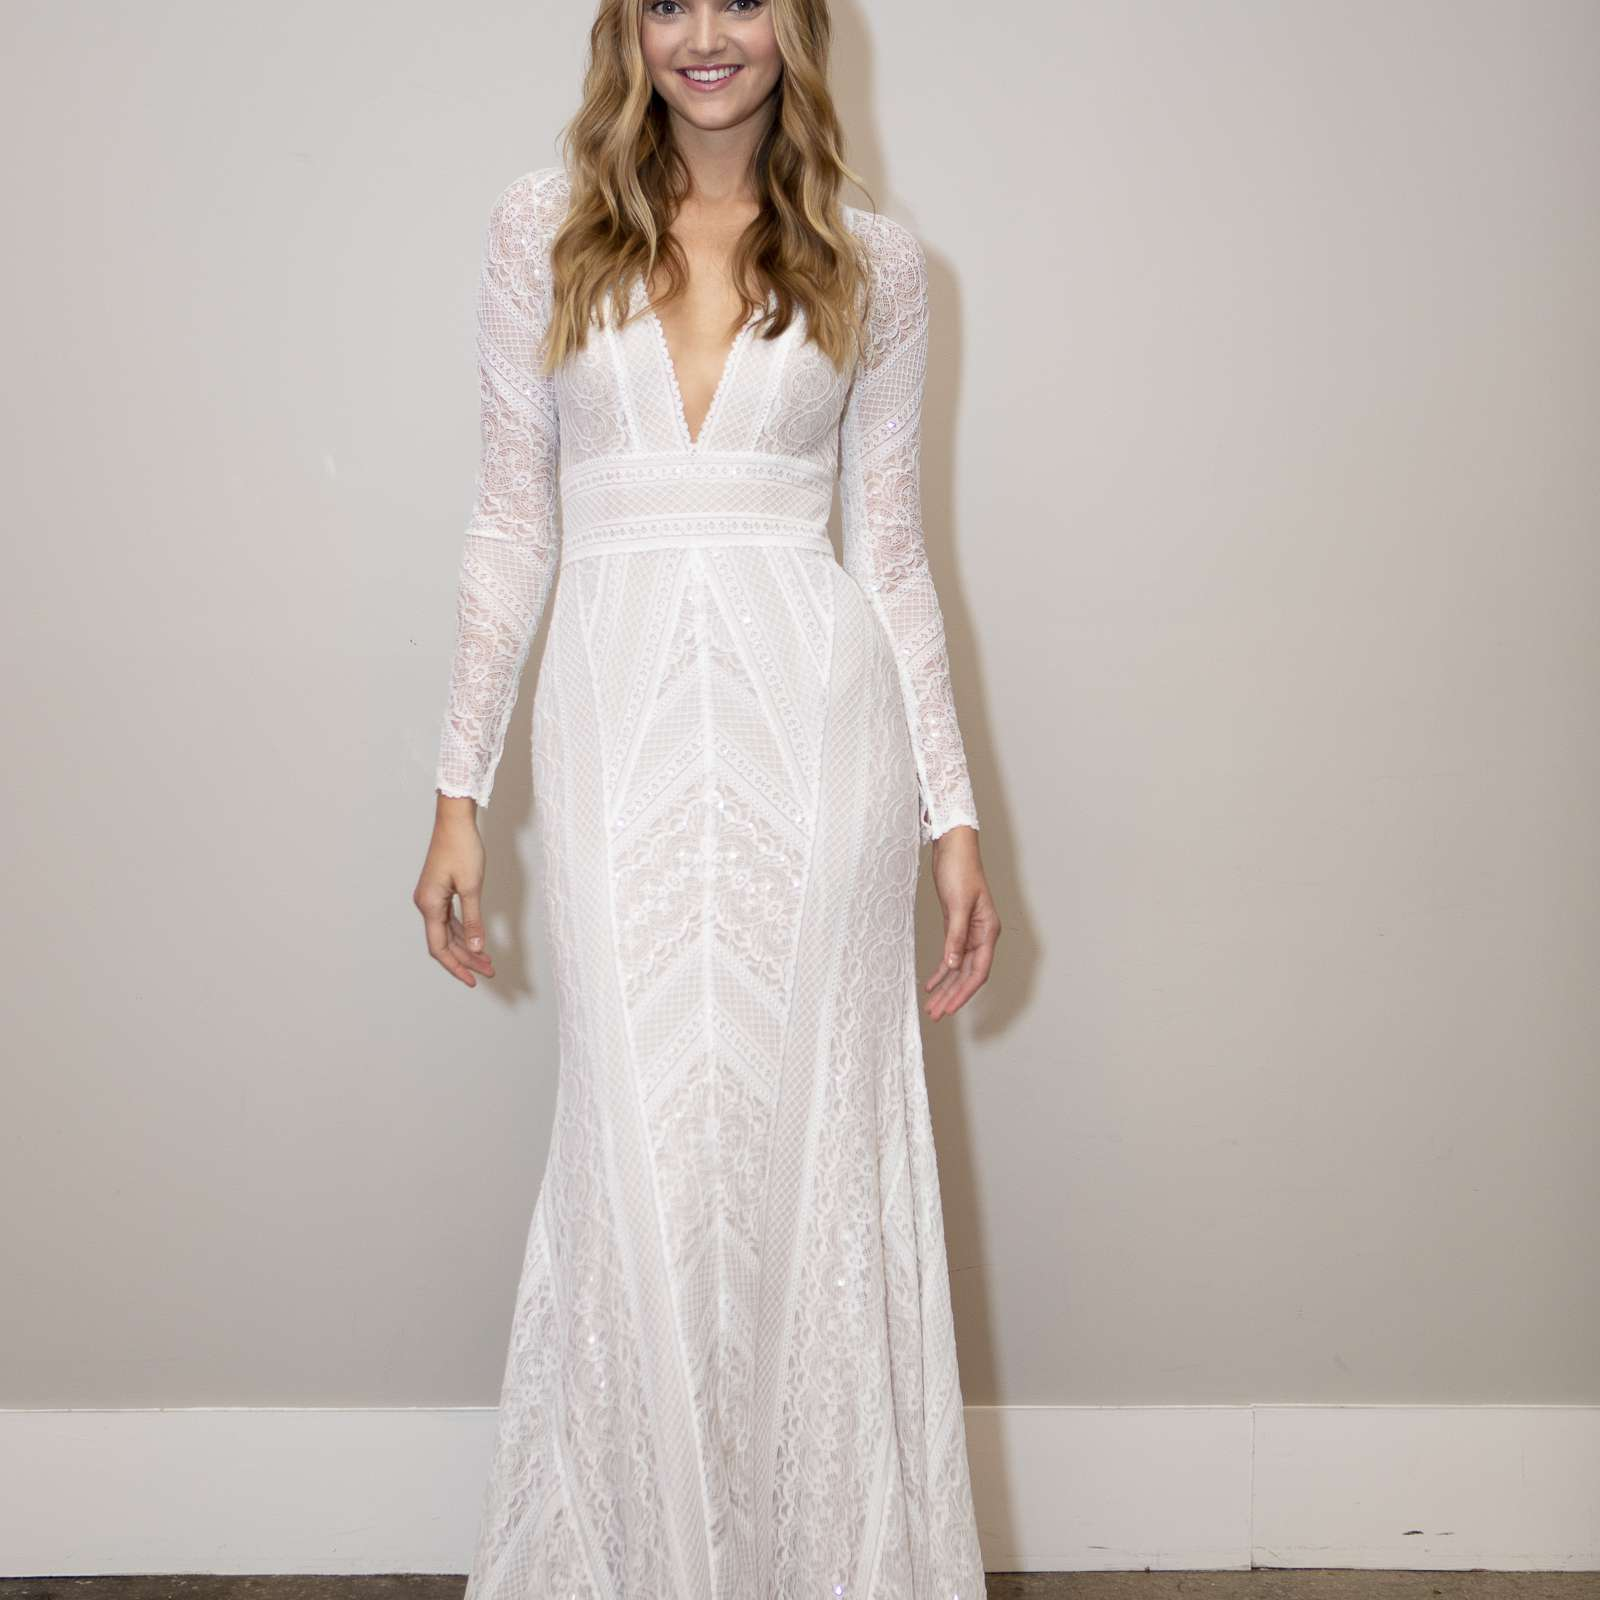 Off White Wedding Gown Meaning: The 9 Spring 2020 Wedding Dress Trends You Need To Know